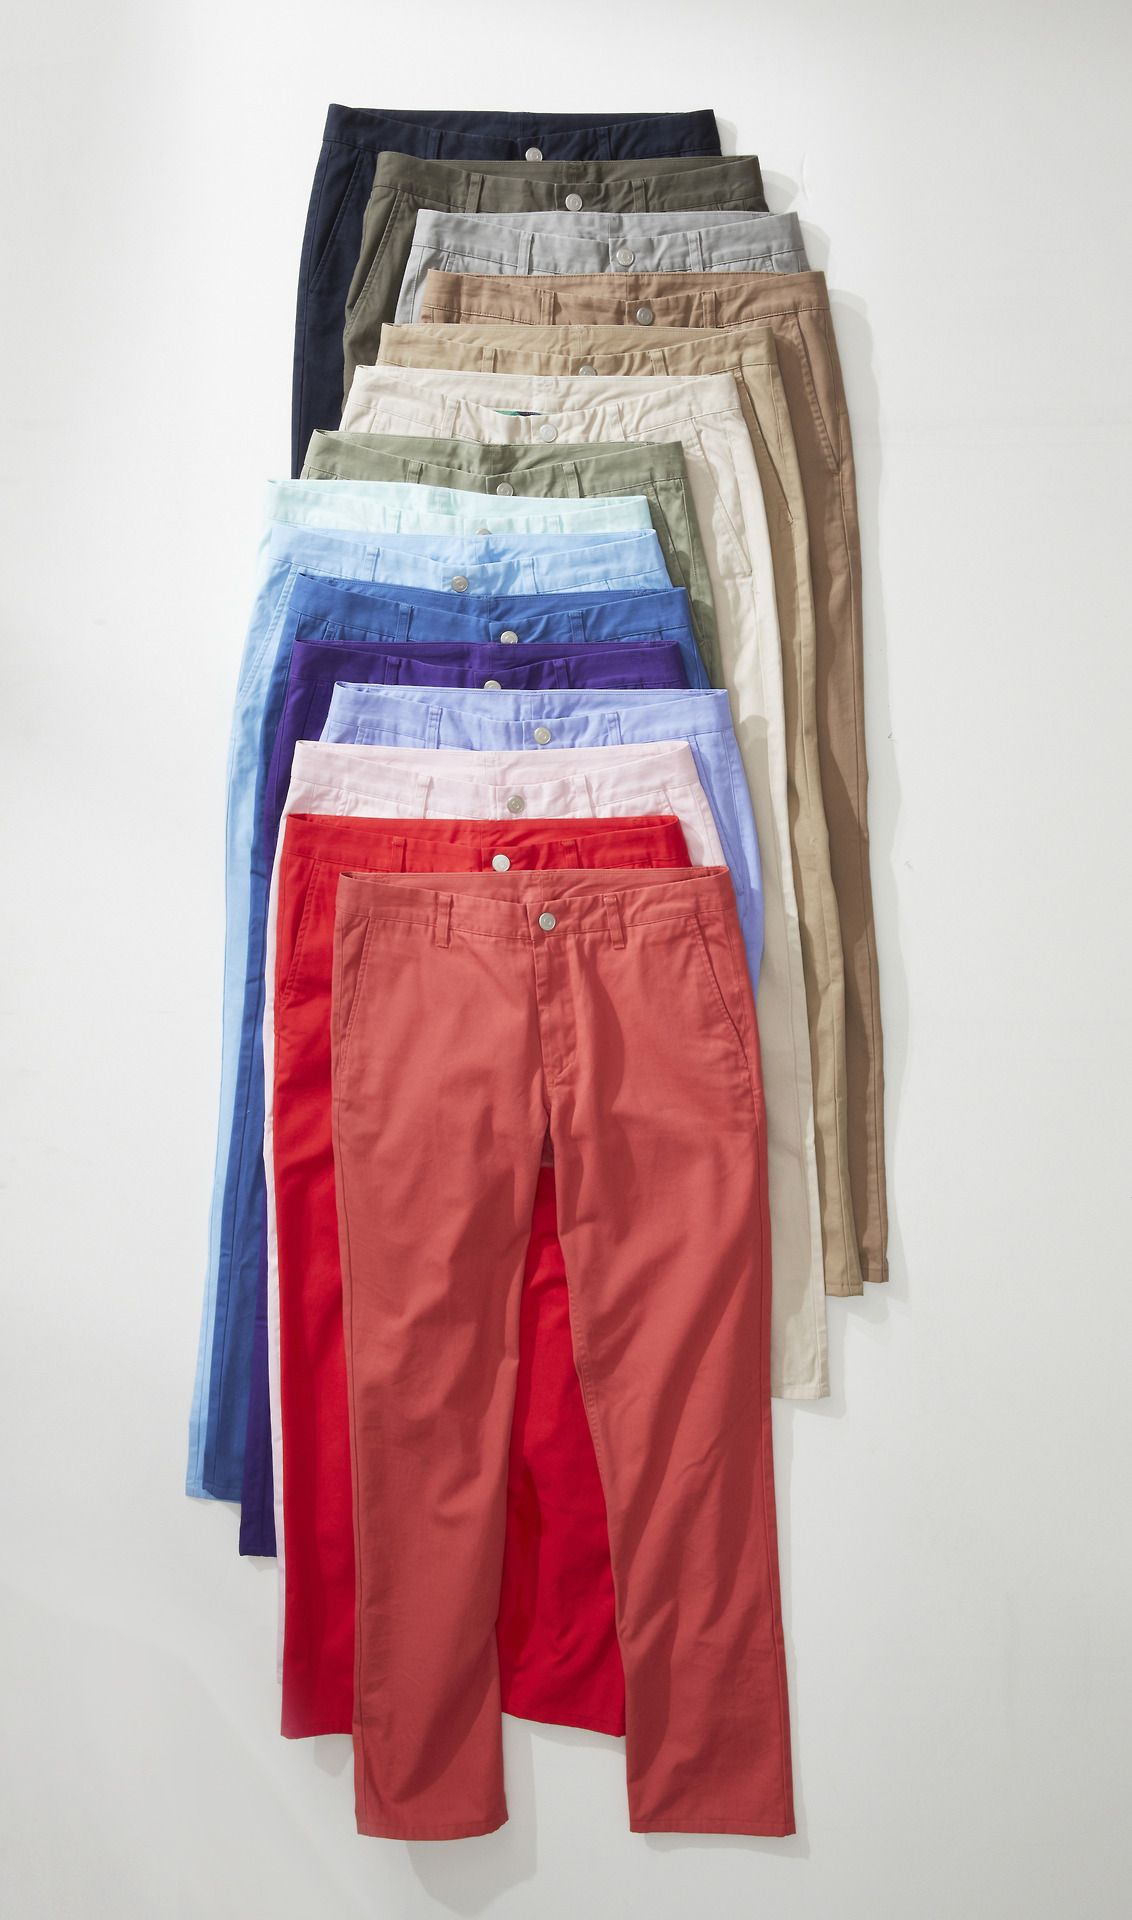 Flannel shirt with shorts men   colors x  waist x  fits ud  permutations of awesome